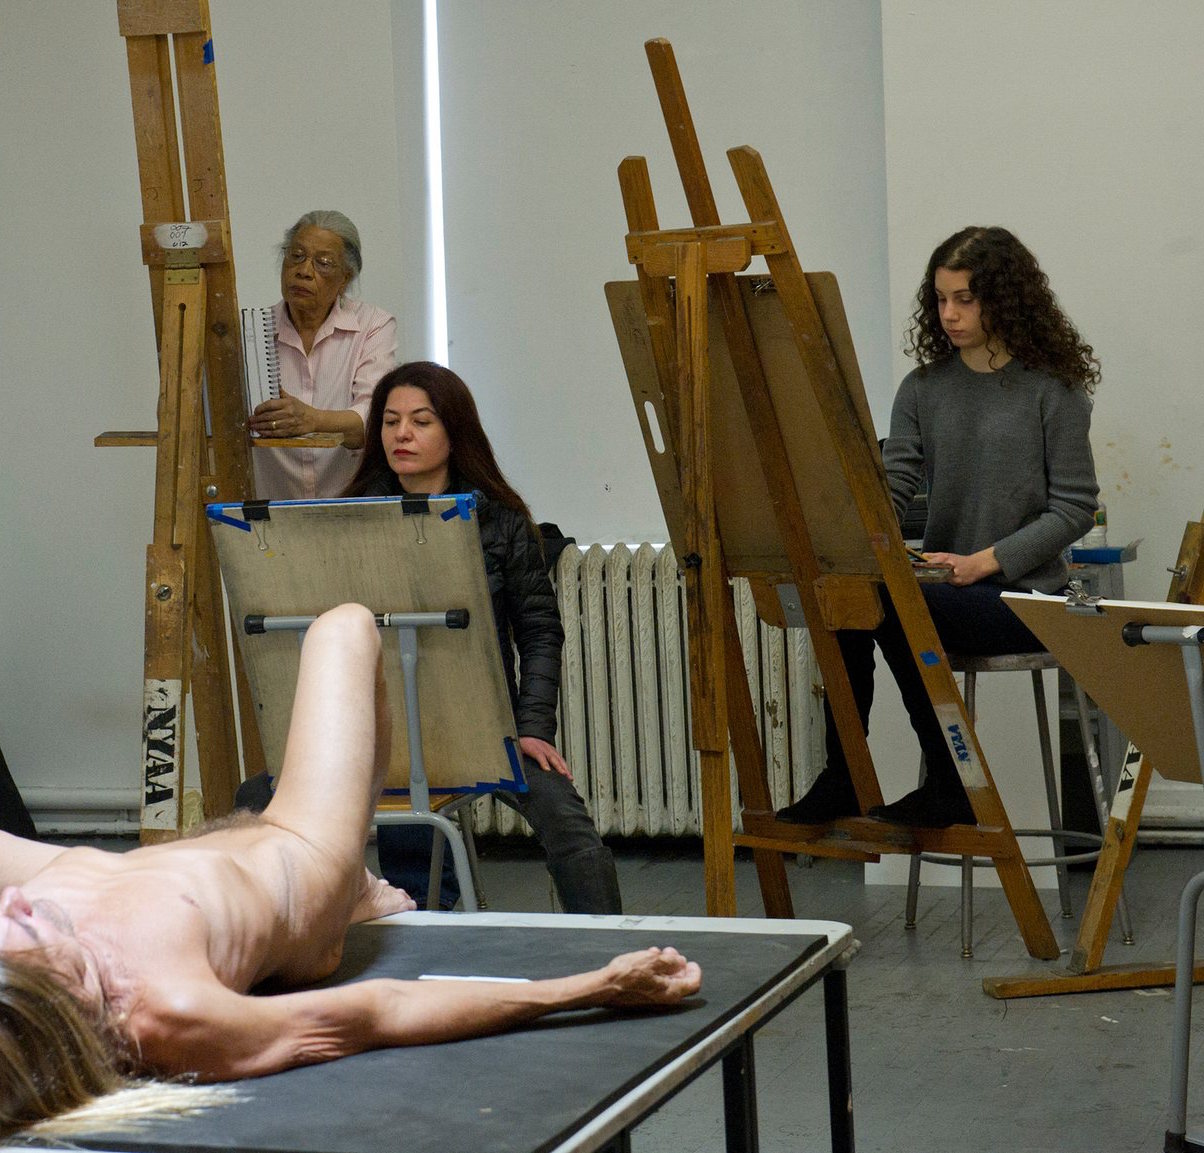 Iggy Pop poses naked for Jeremy Deller exhibition